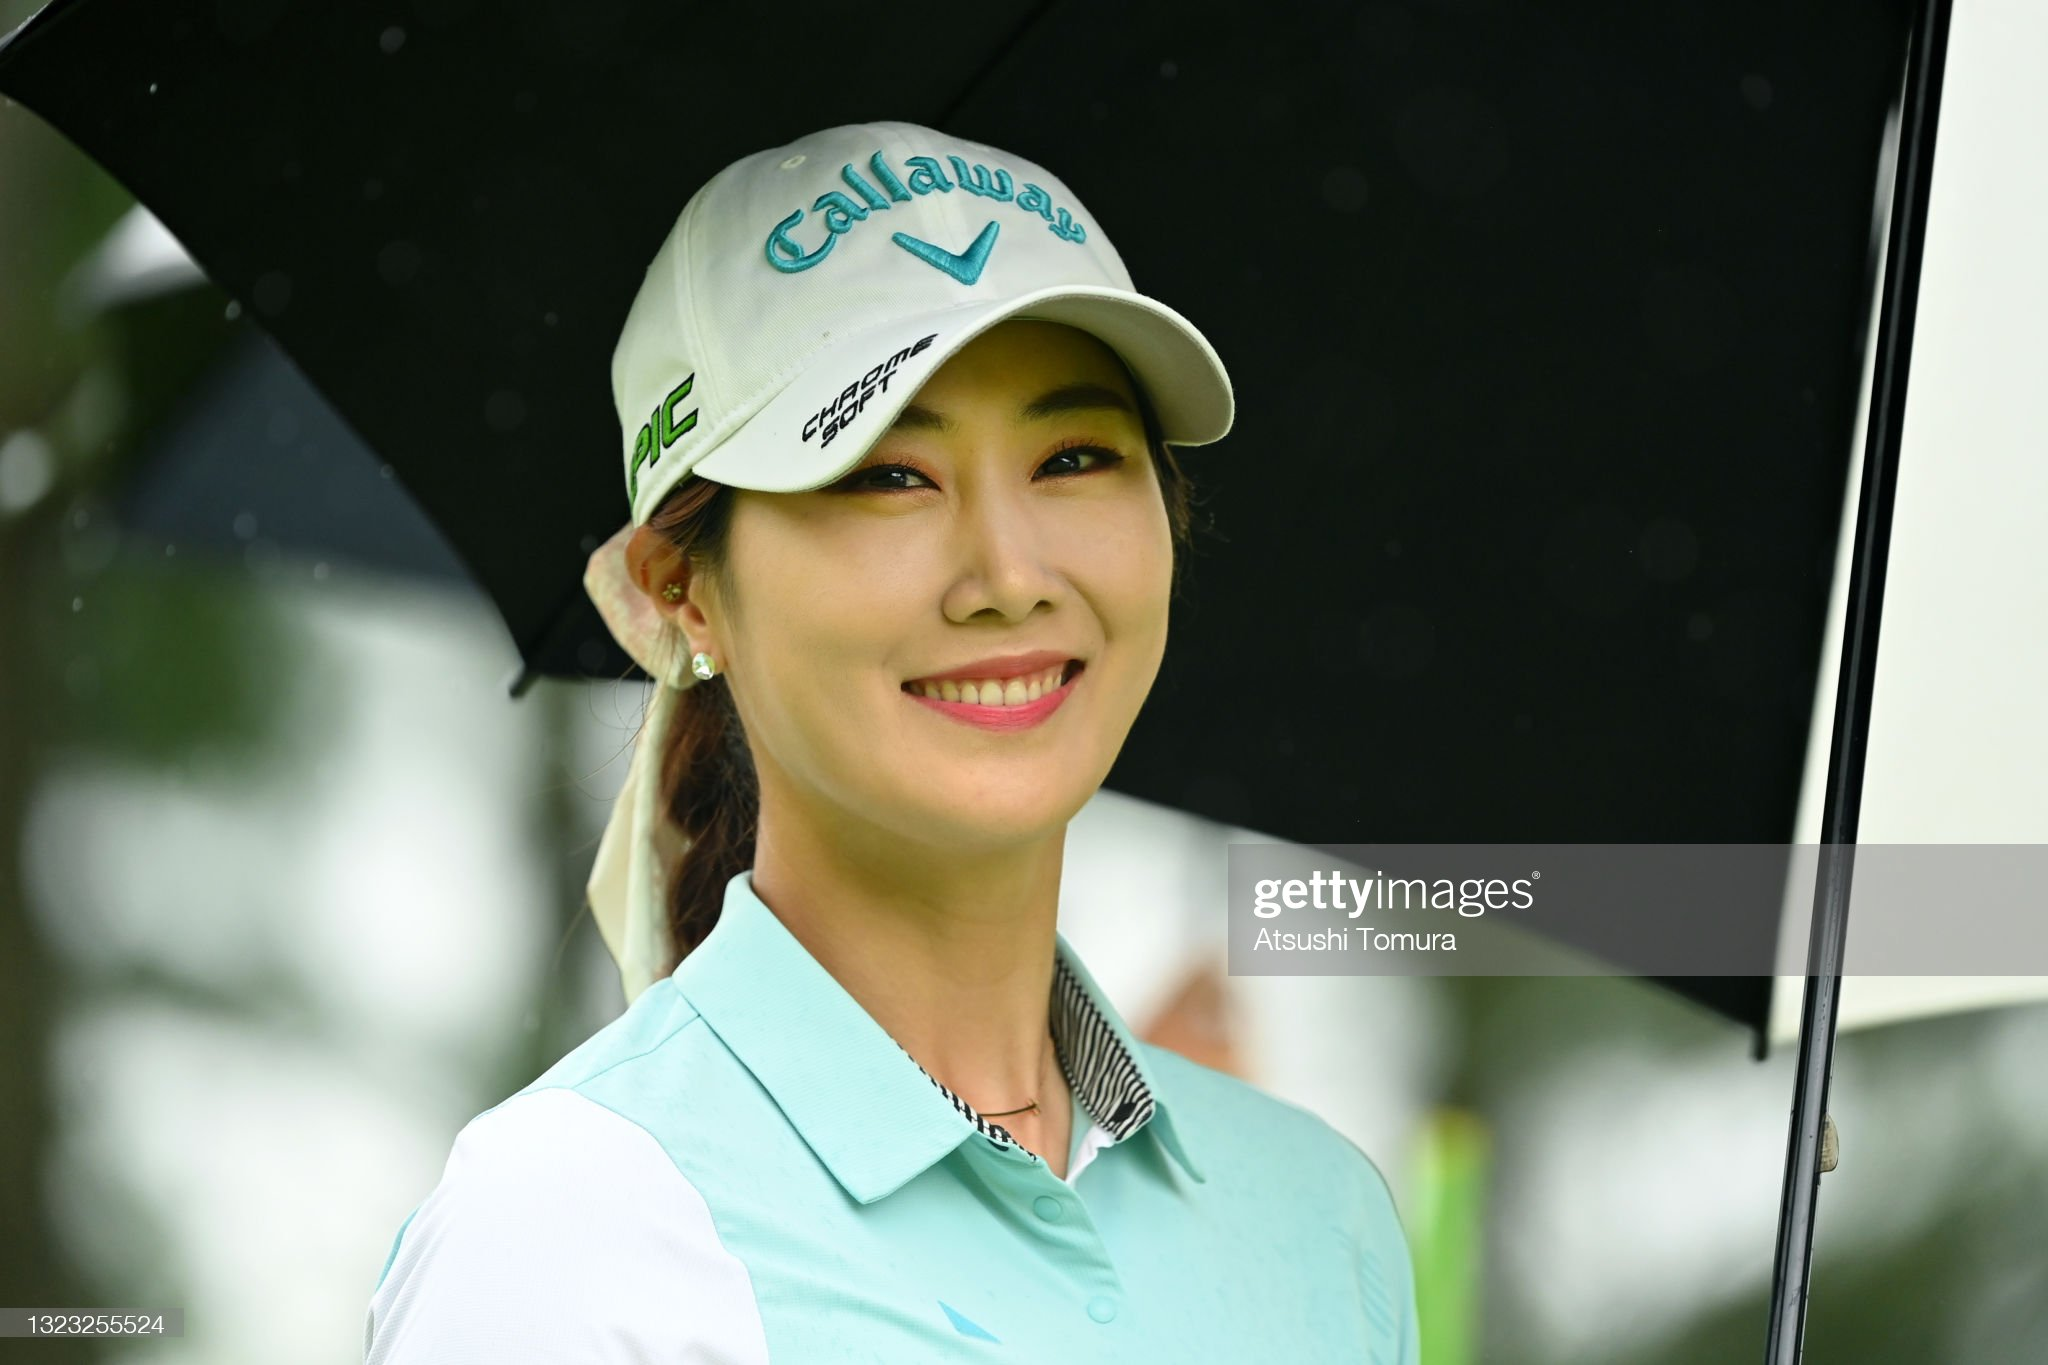 https://media.gettyimages.com/photos/haneul-kim-of-south-korea-smiles-on-the-2nd-hole-during-the-final-of-picture-id1323255524?s=2048x2048